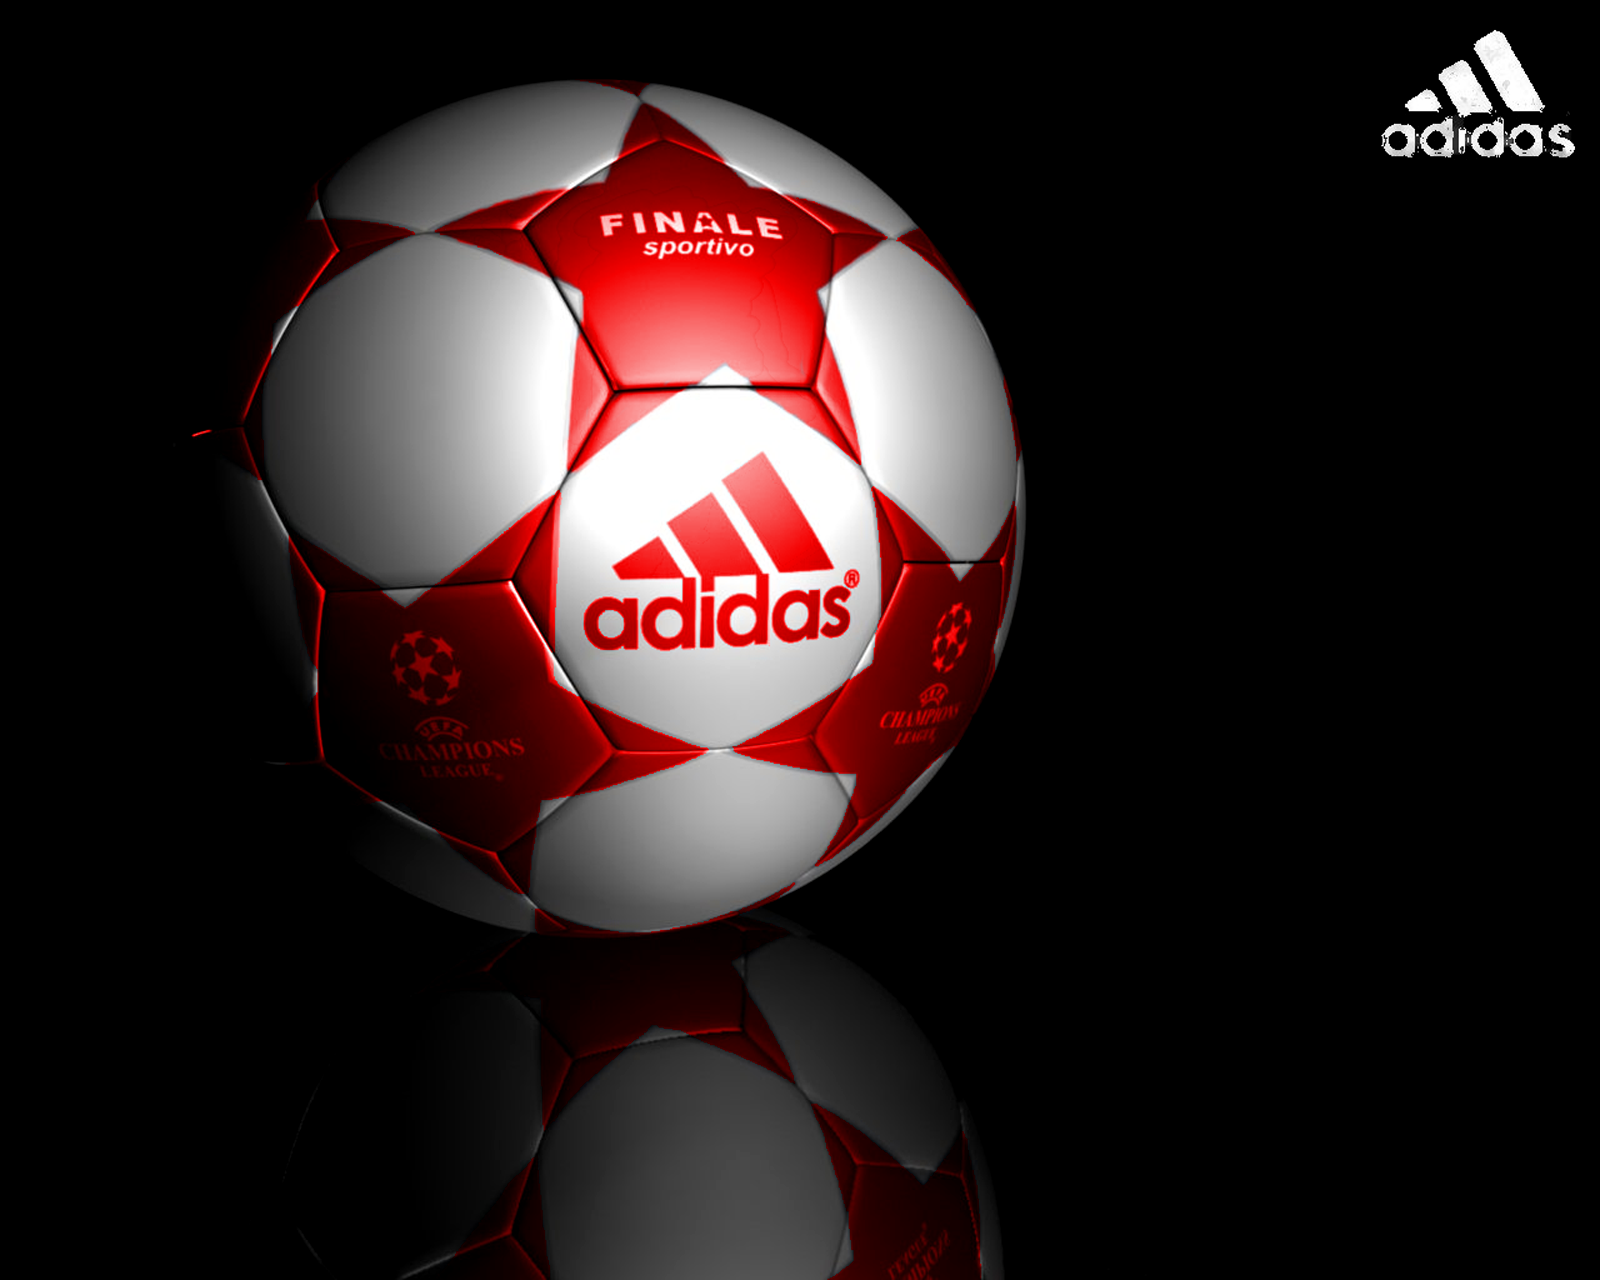 Adidas Logo HD Wallpapers| HD Wallpapers ,Backgrounds ...